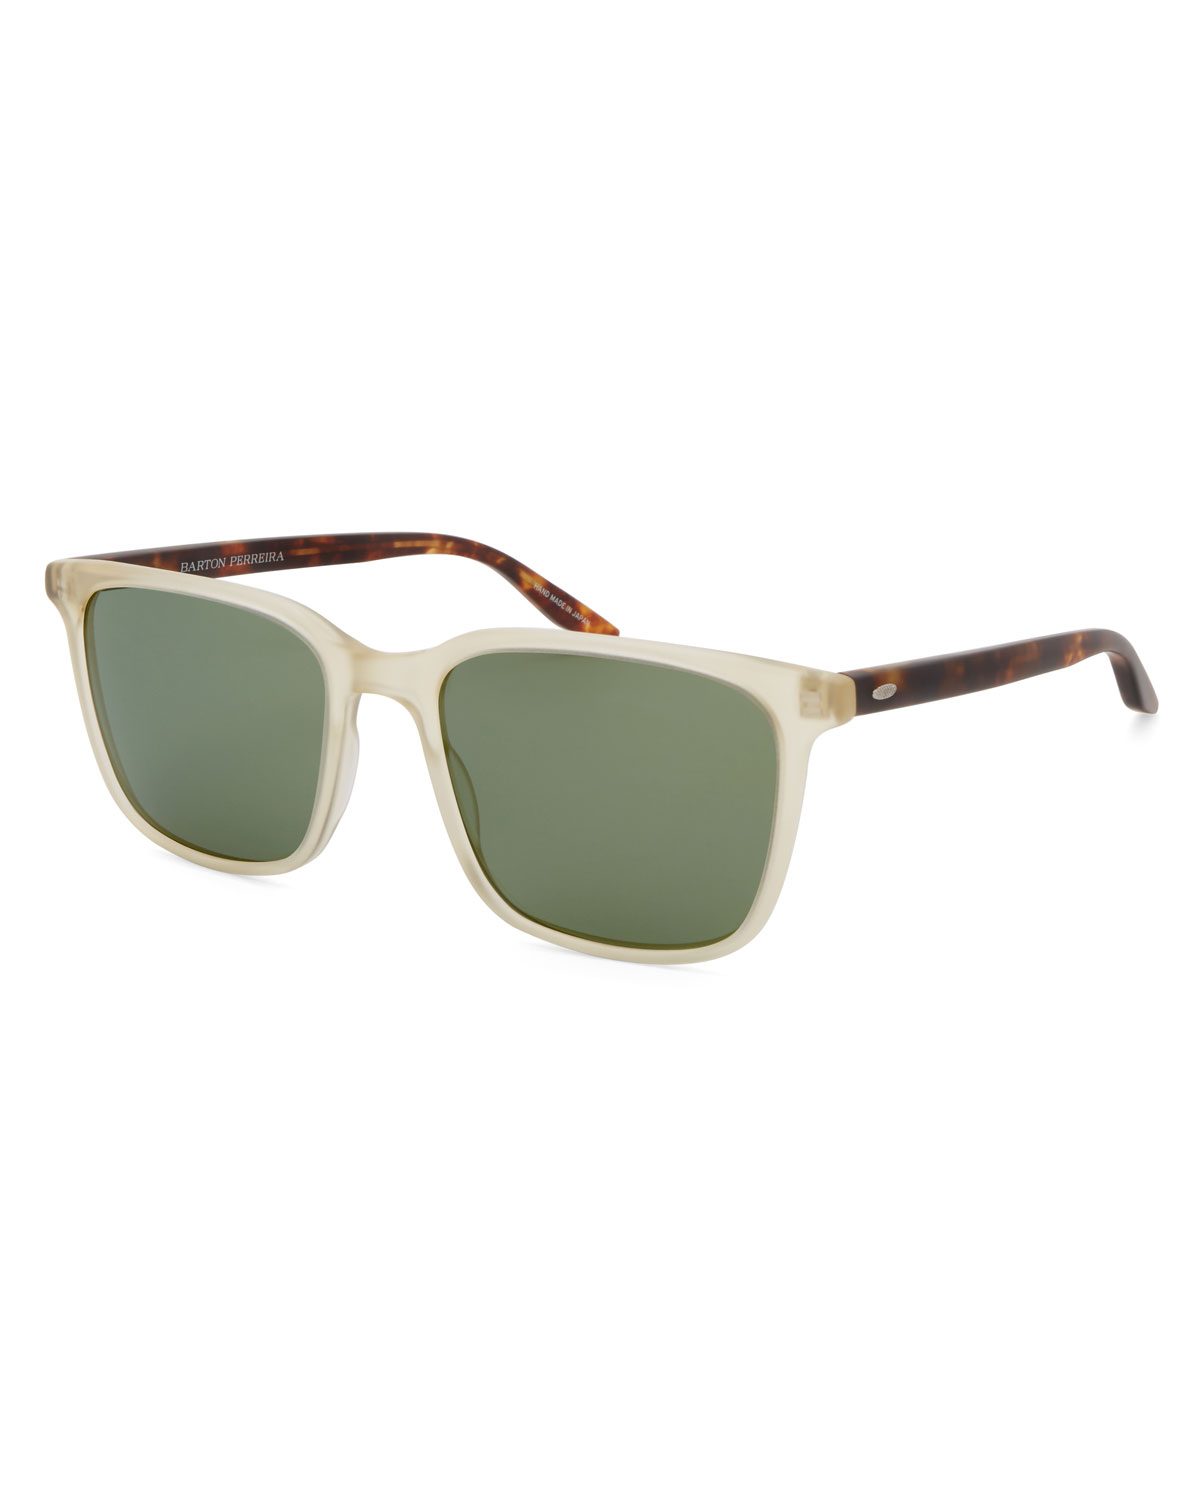 69a0d2379a8d9 Barton Perreira Men s Heptone Two-Tone Acetate Sunglasses In White Brown